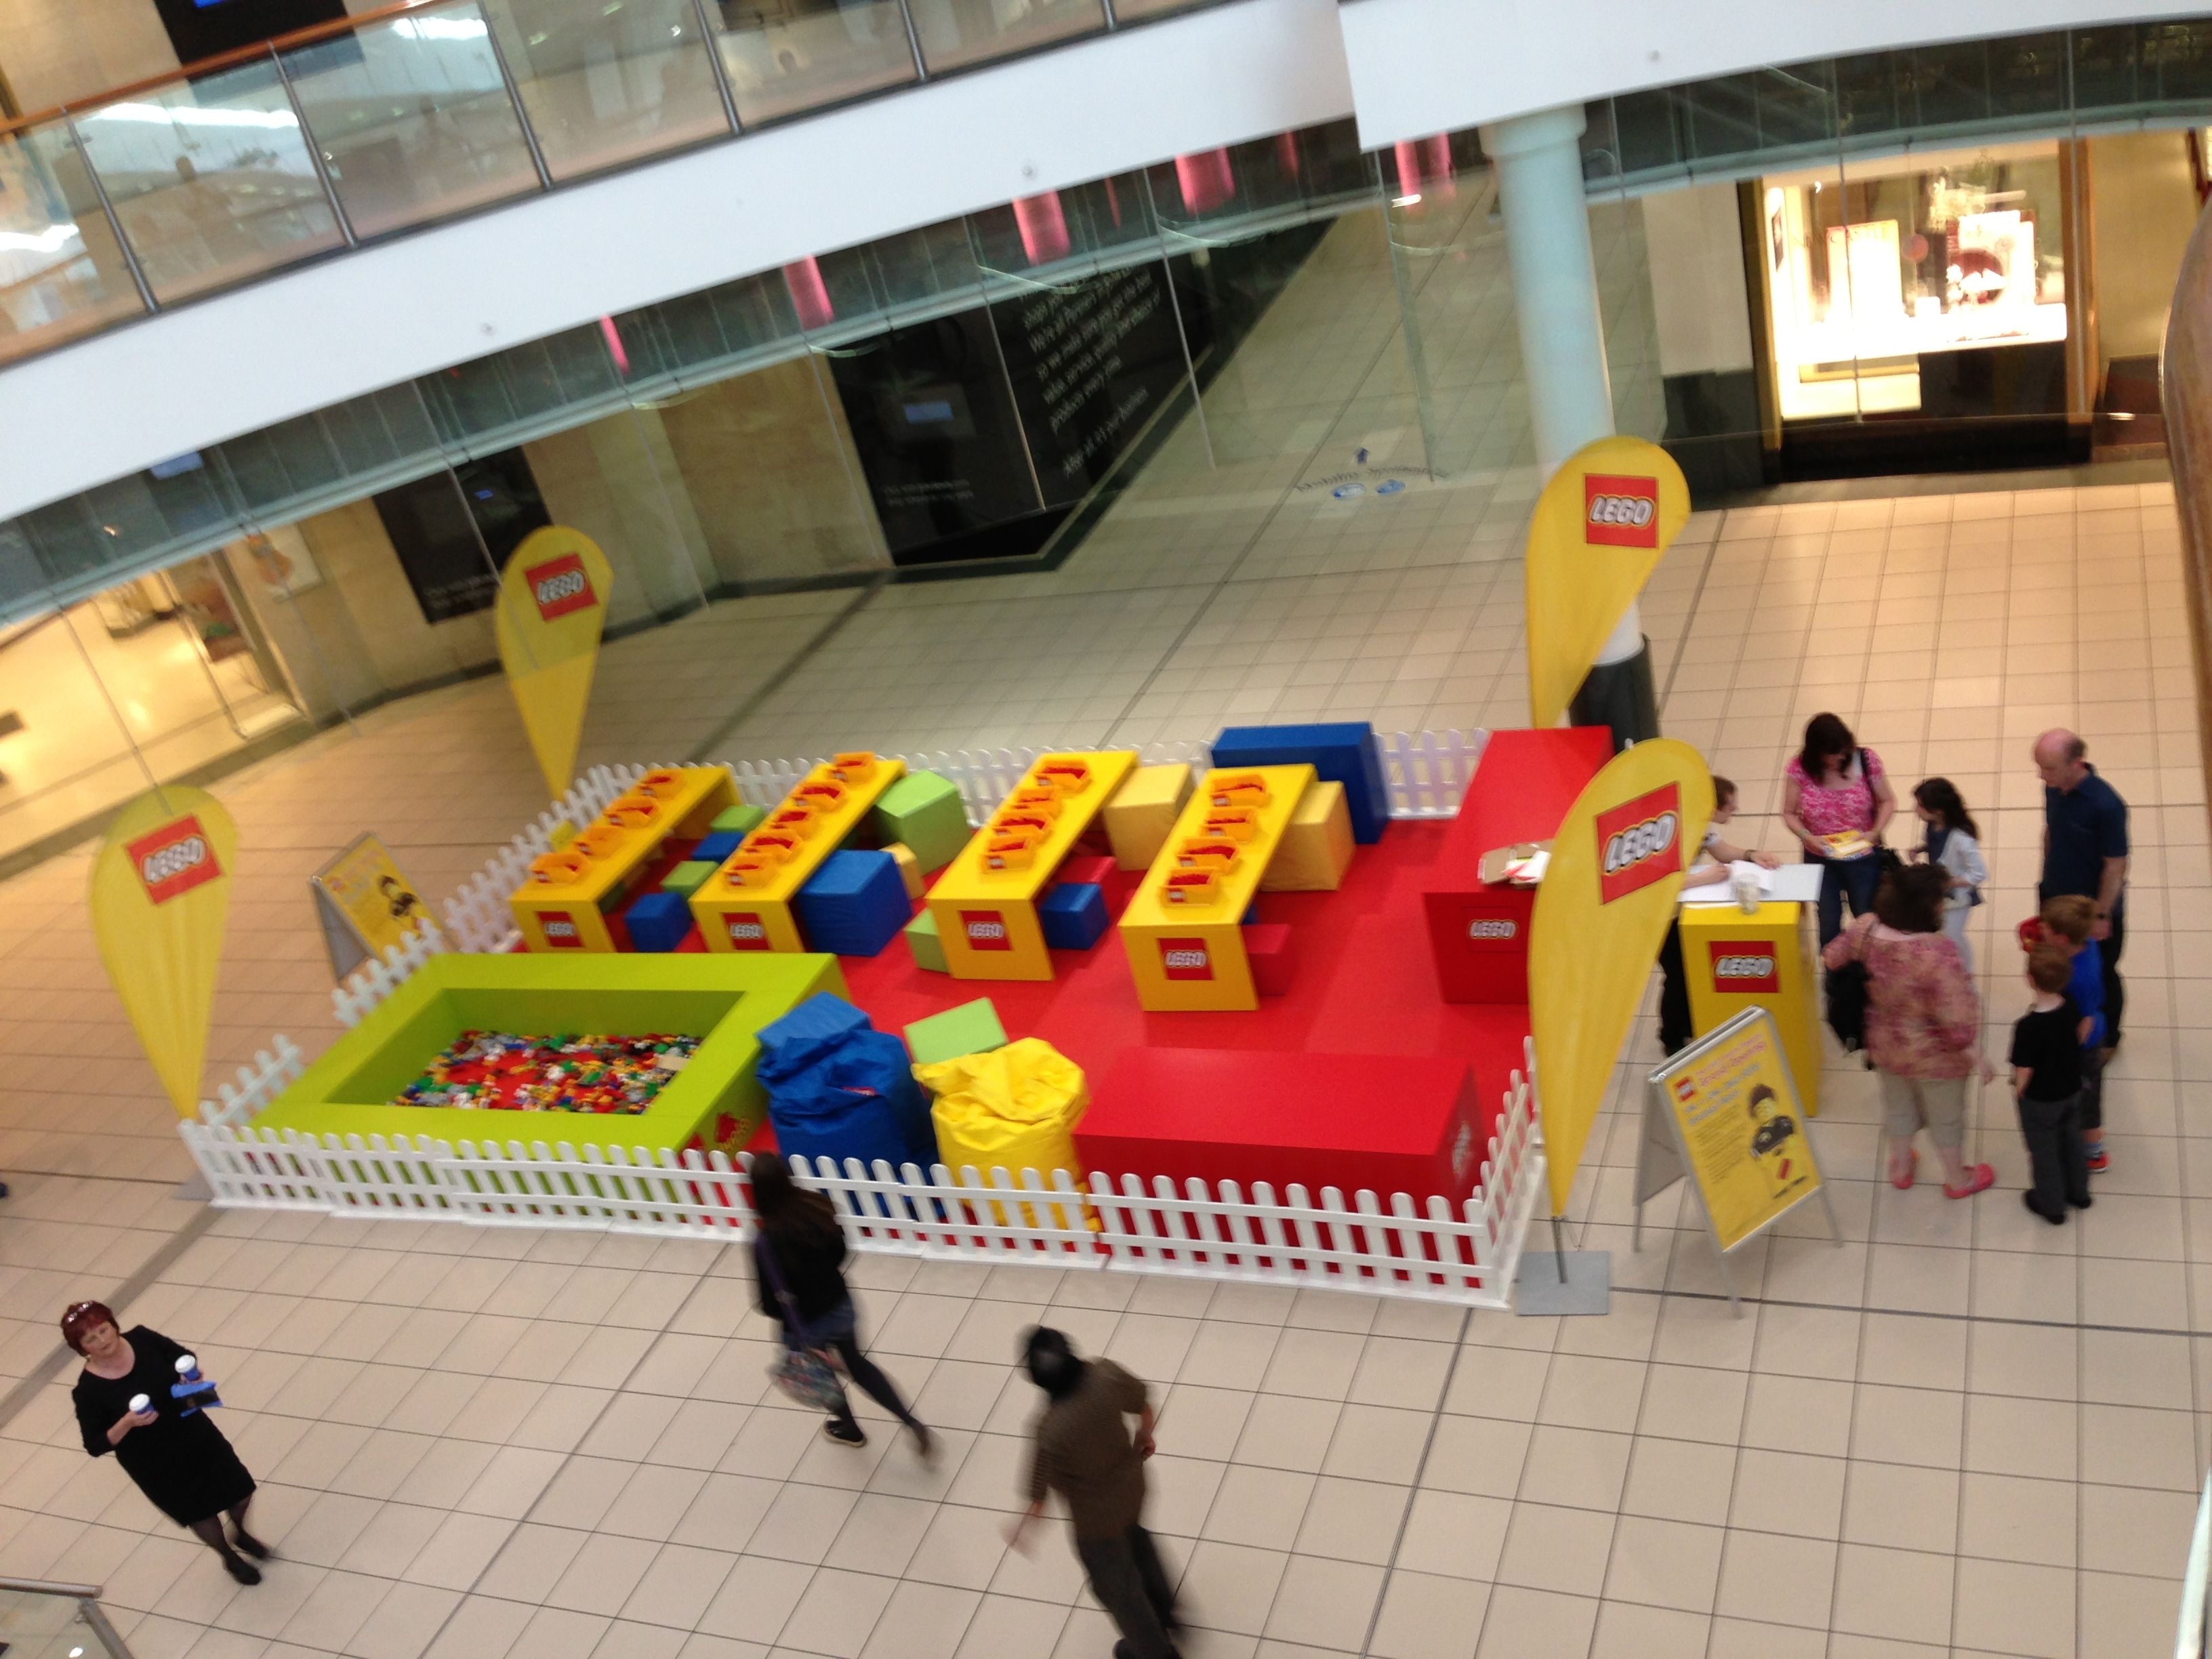 Lego play area for the opening of Lego Store at Buchanan Galleries, Glasgow